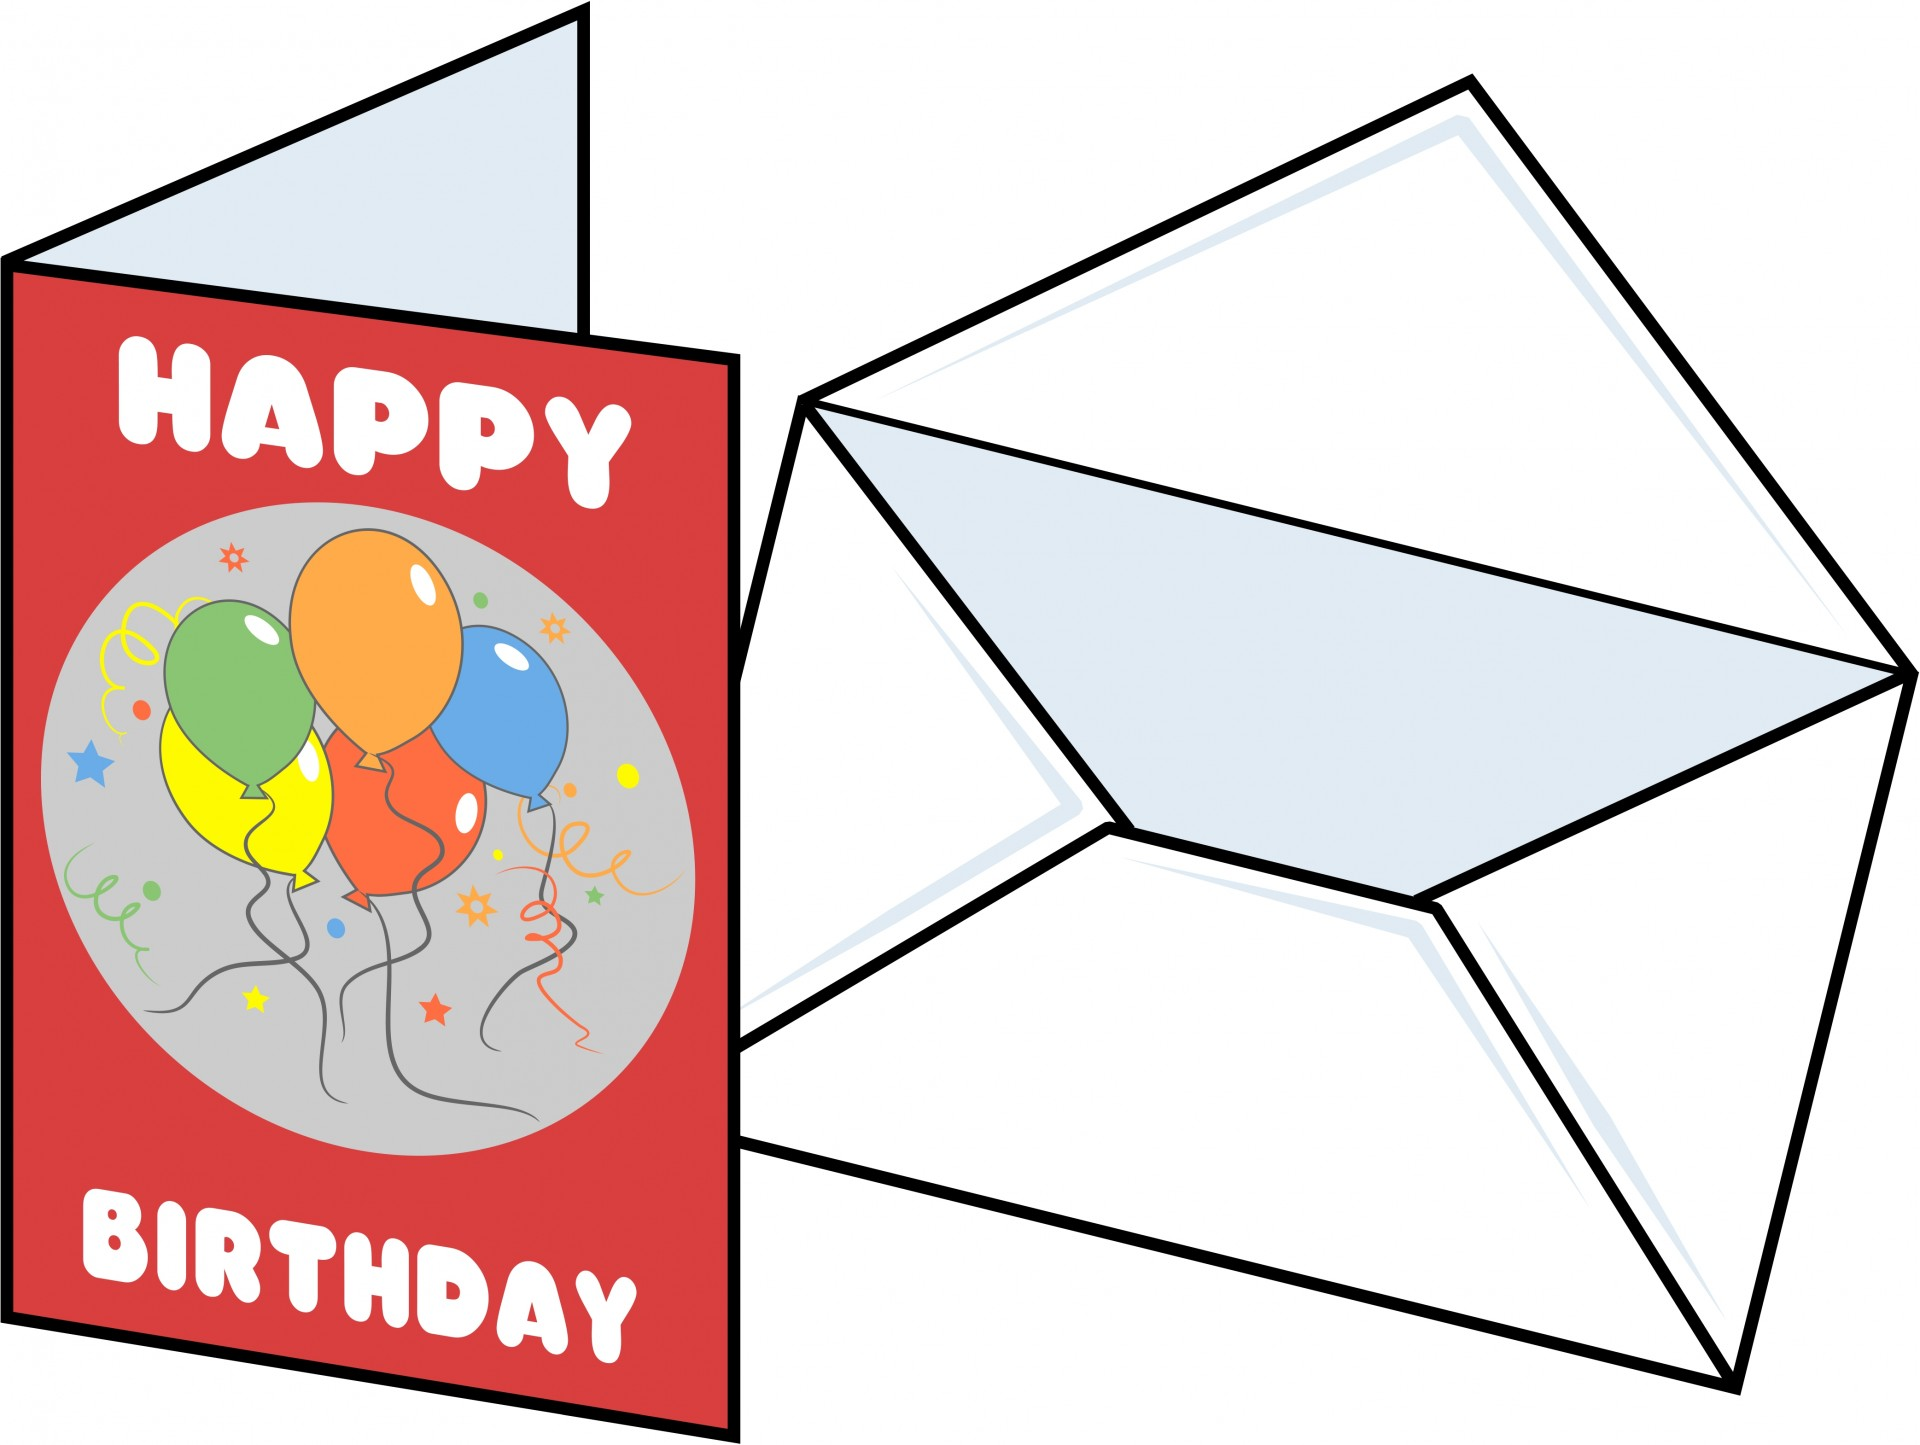 Free Clipart 70th Birthday | Free download best Free Clipart 70th ...